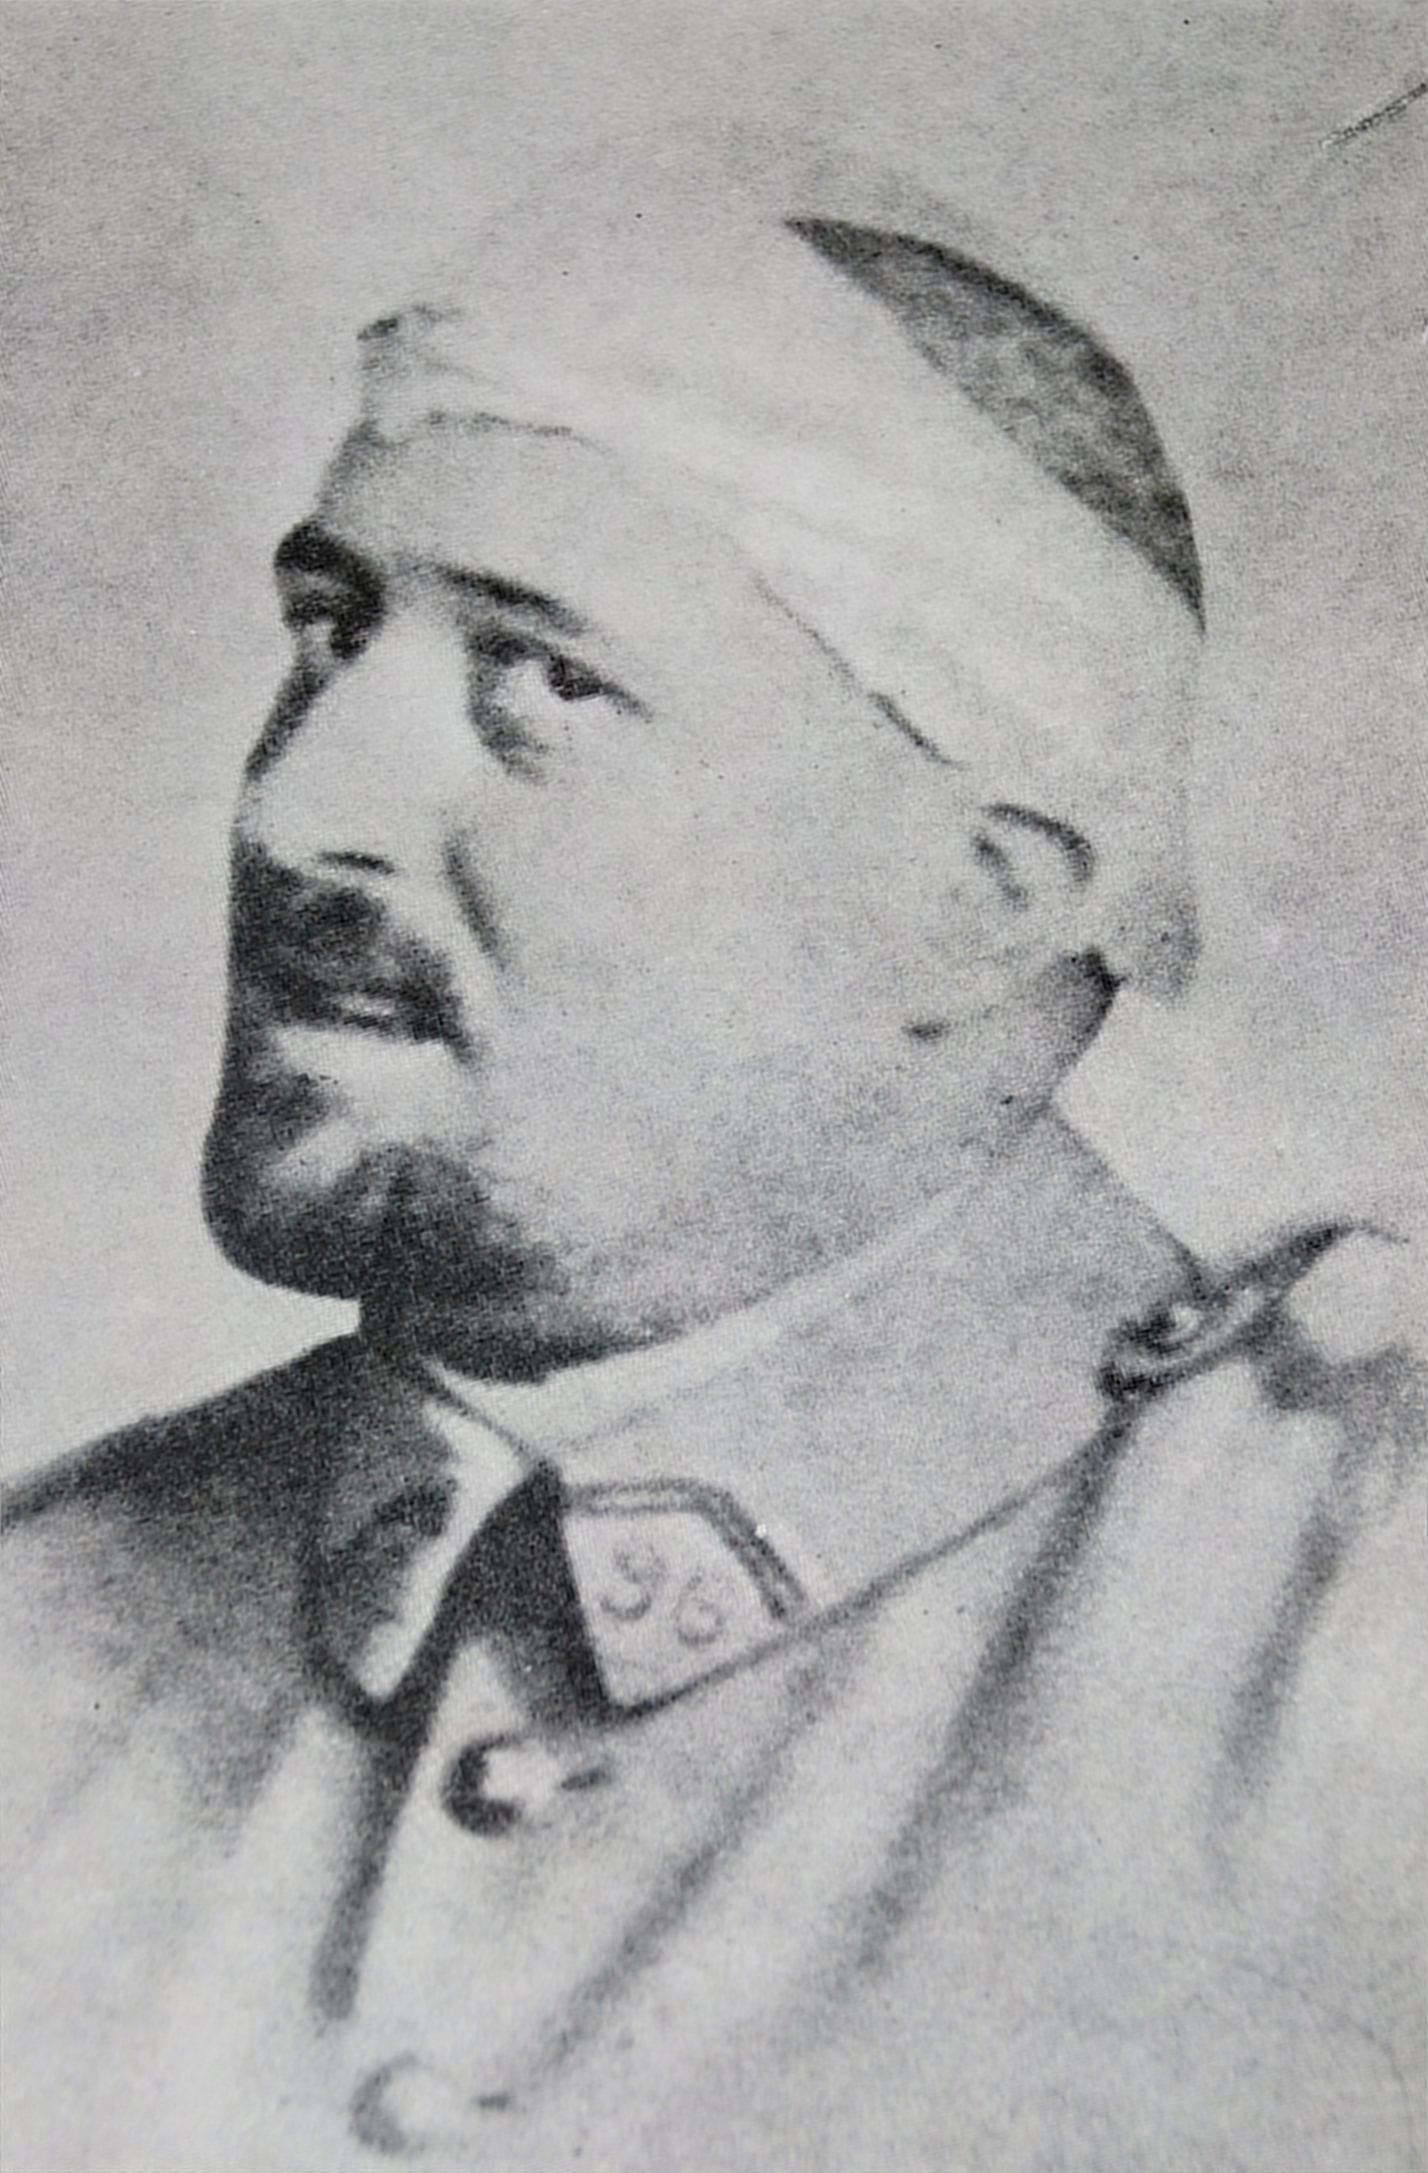 Guillaume Apollinaire biographie